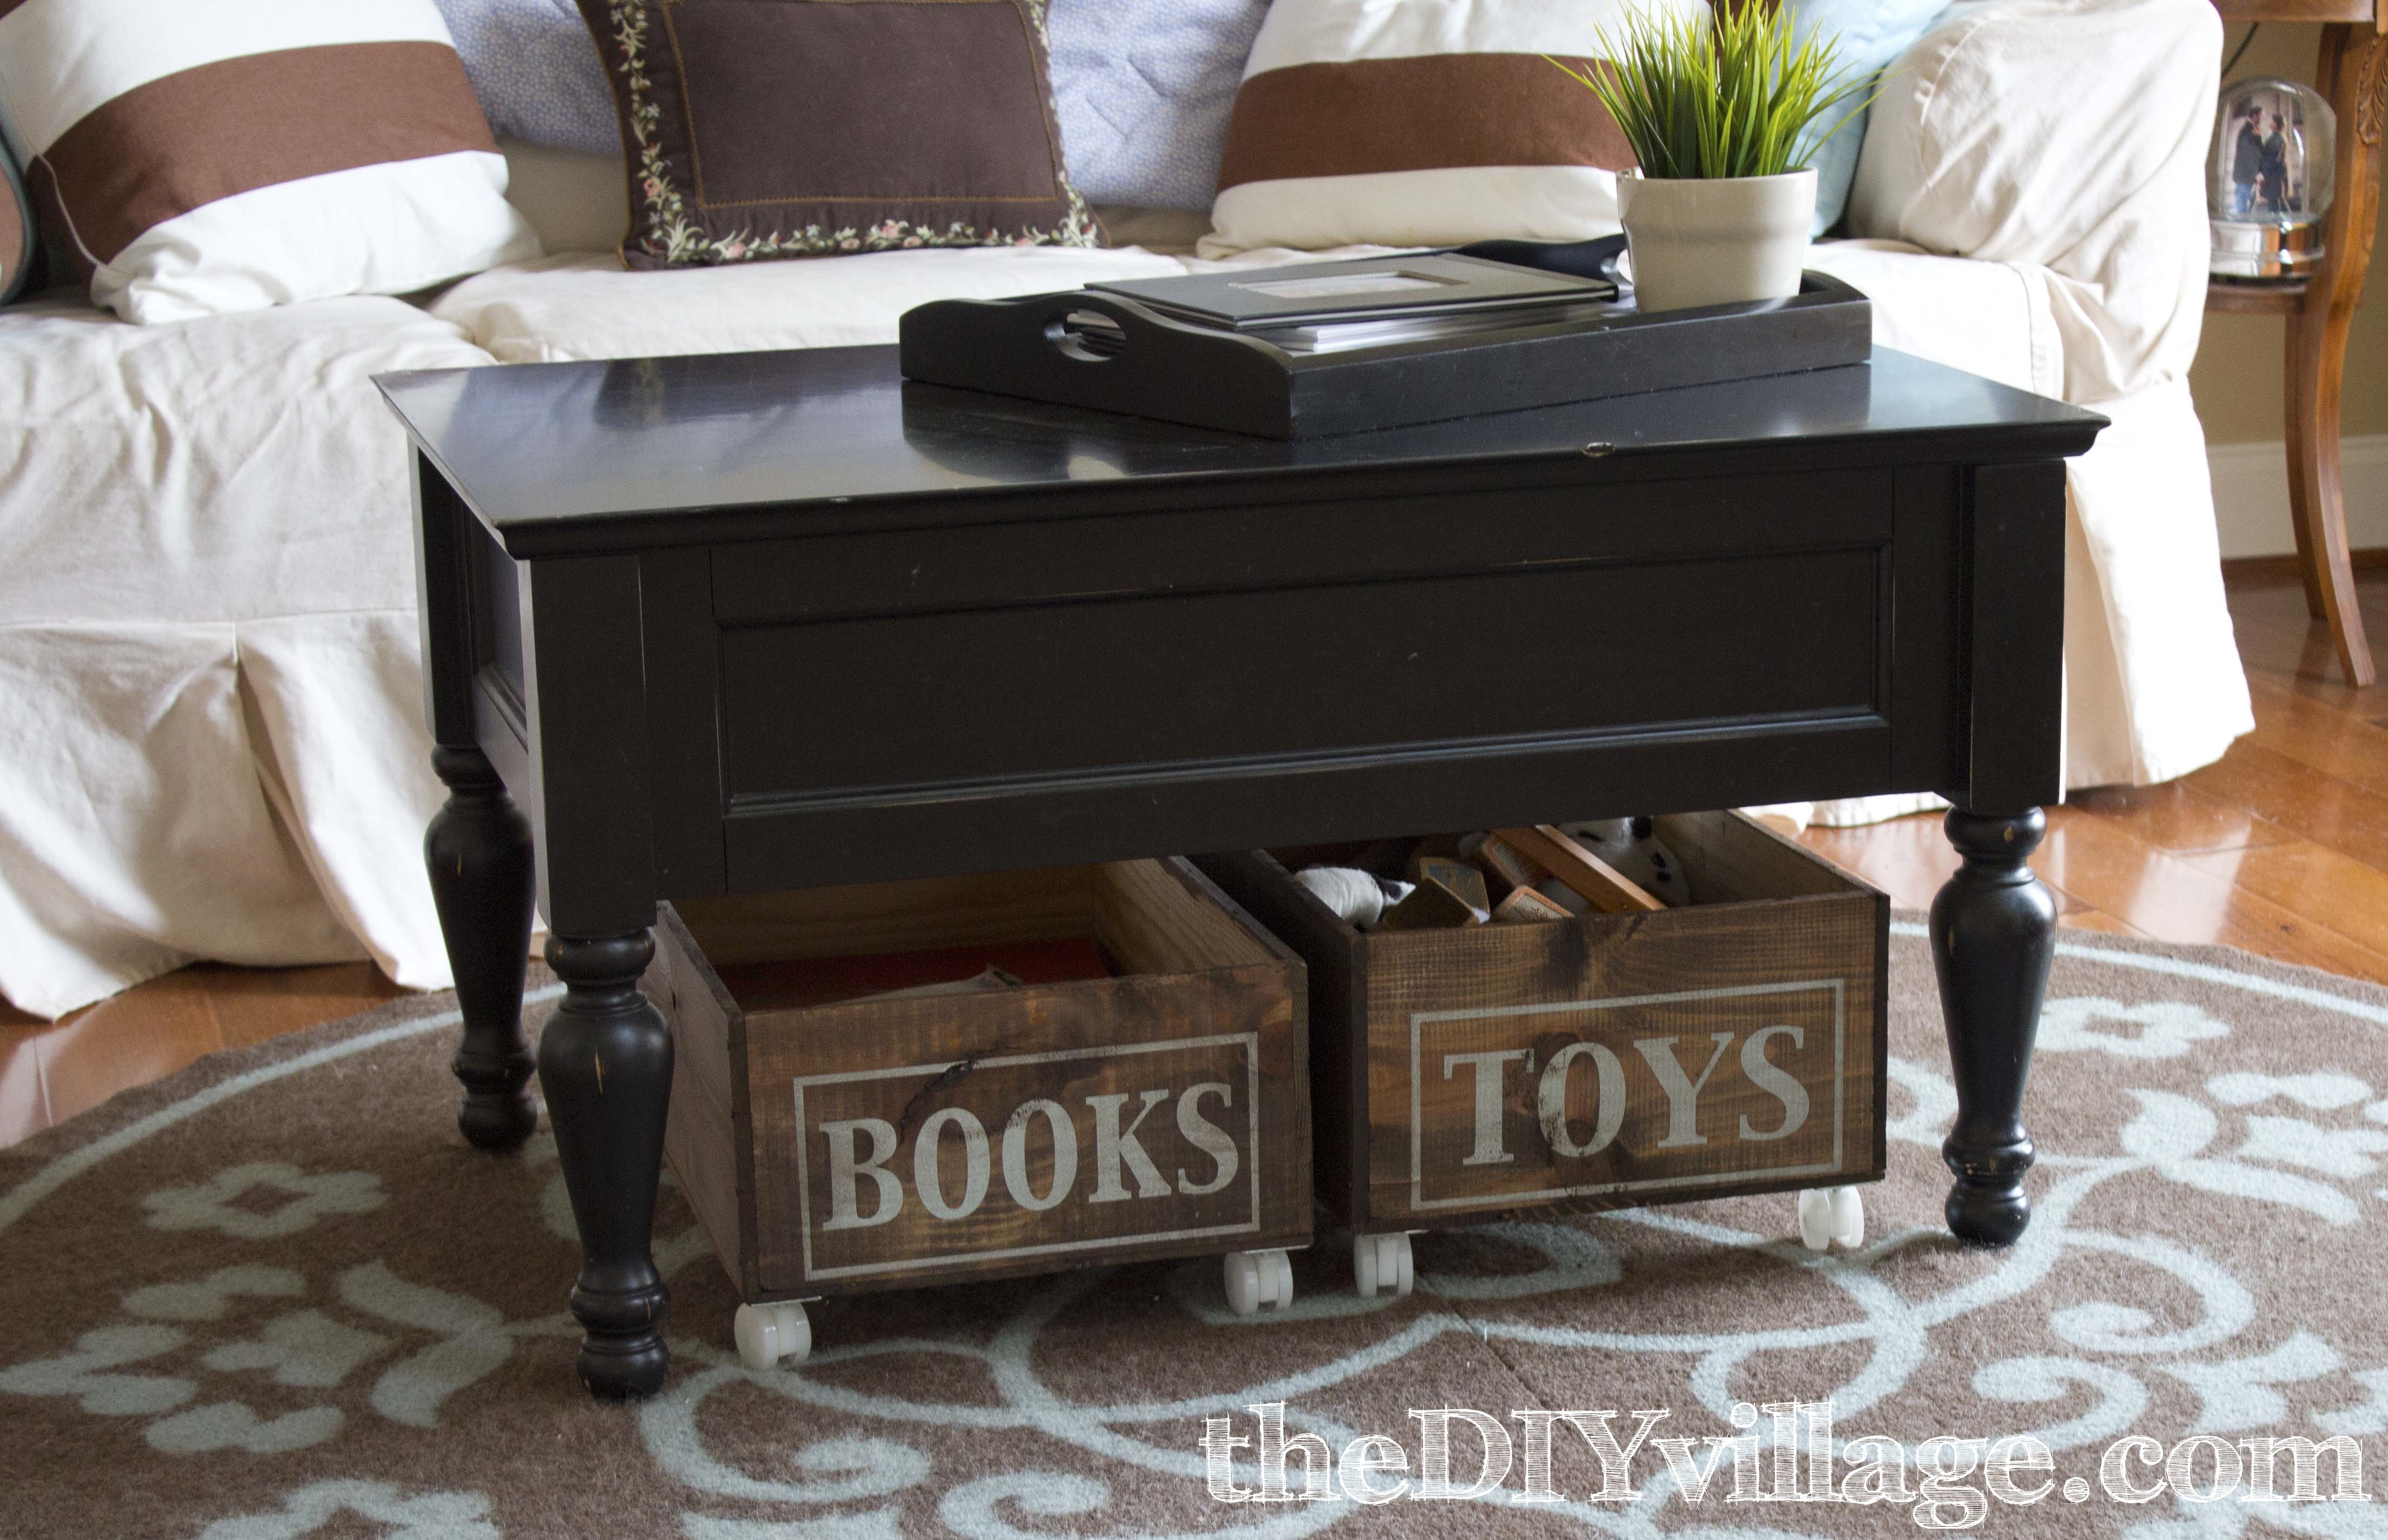 Up Cycled Wine Crates To Rolling Storage By: TheDIYvillage.com